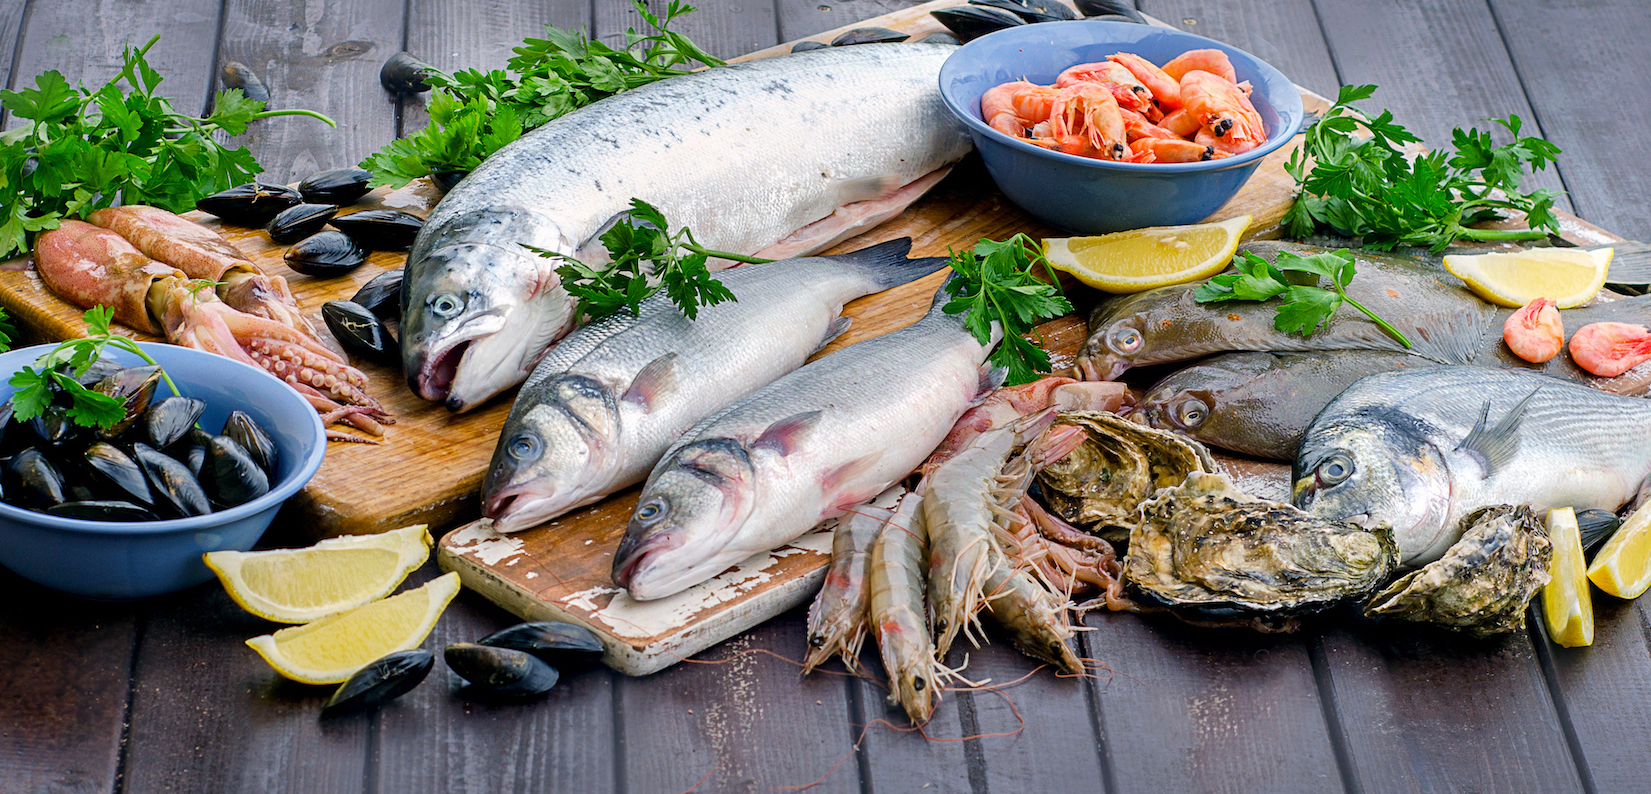 Tips for choosing and preparing fish